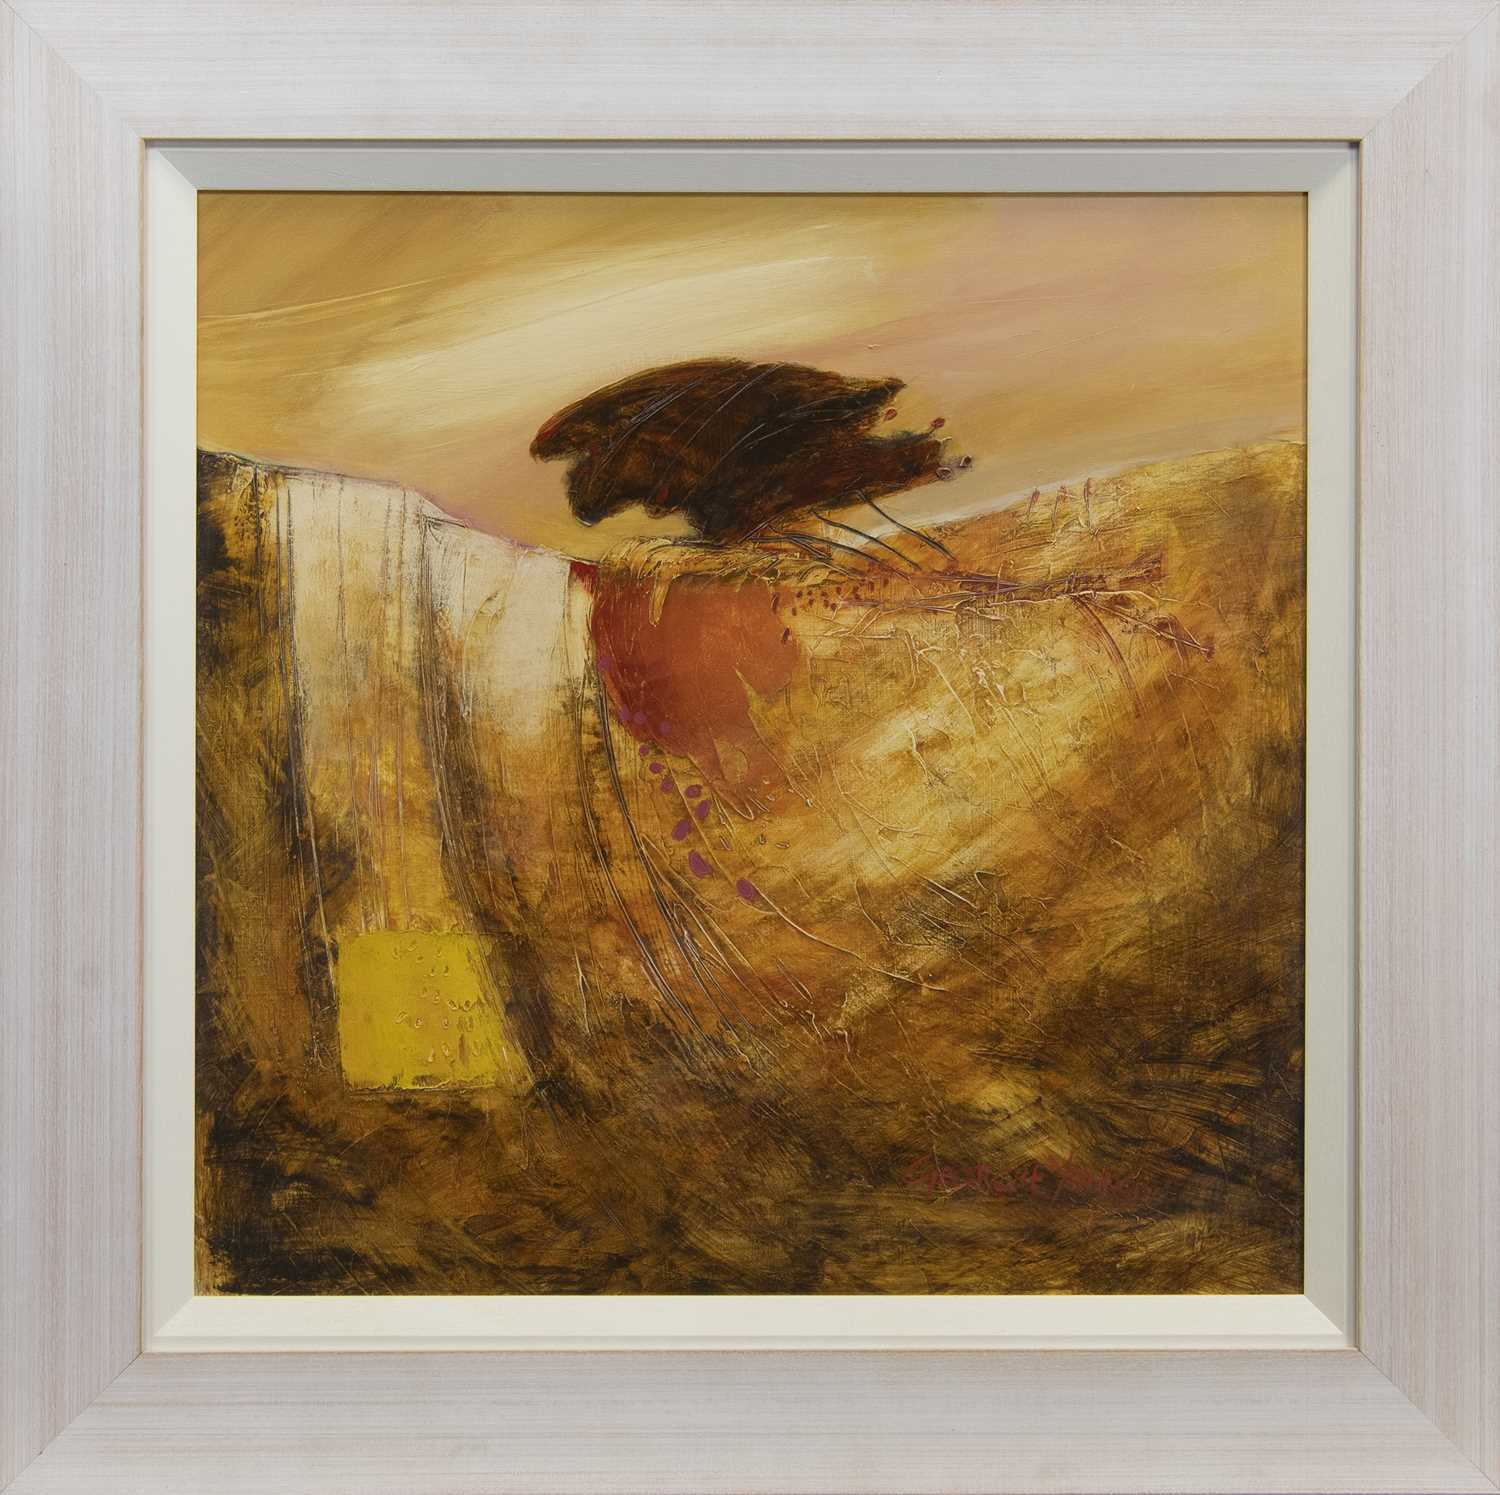 Lot 536 - BLUSTERY, AN ACRYLIC BY GEORGIE YOUNG